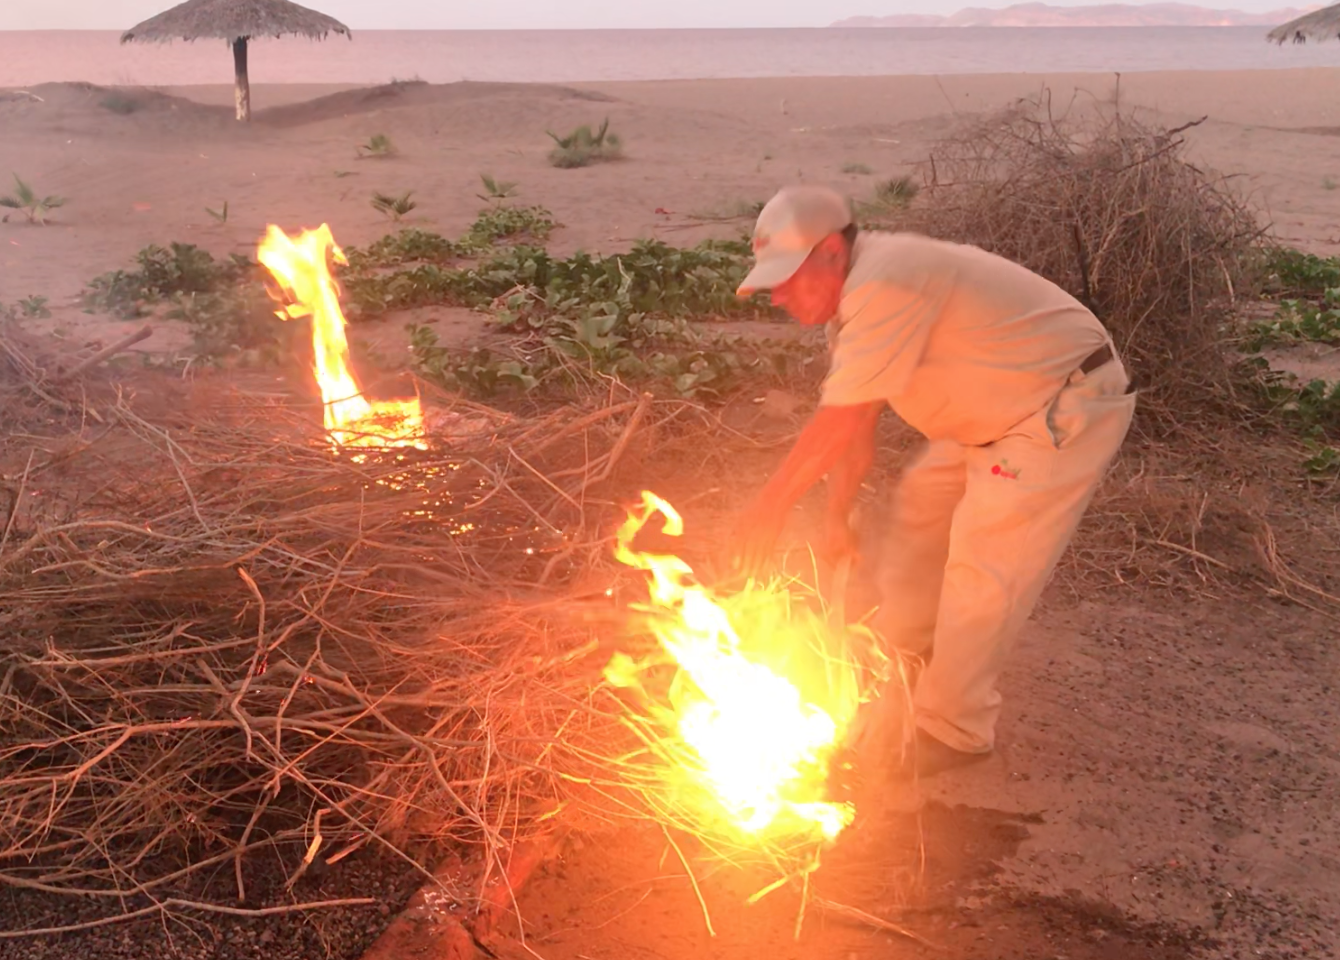 man burns dry brush over pit in sand to cook chocolata clams in Loreto, Mexico